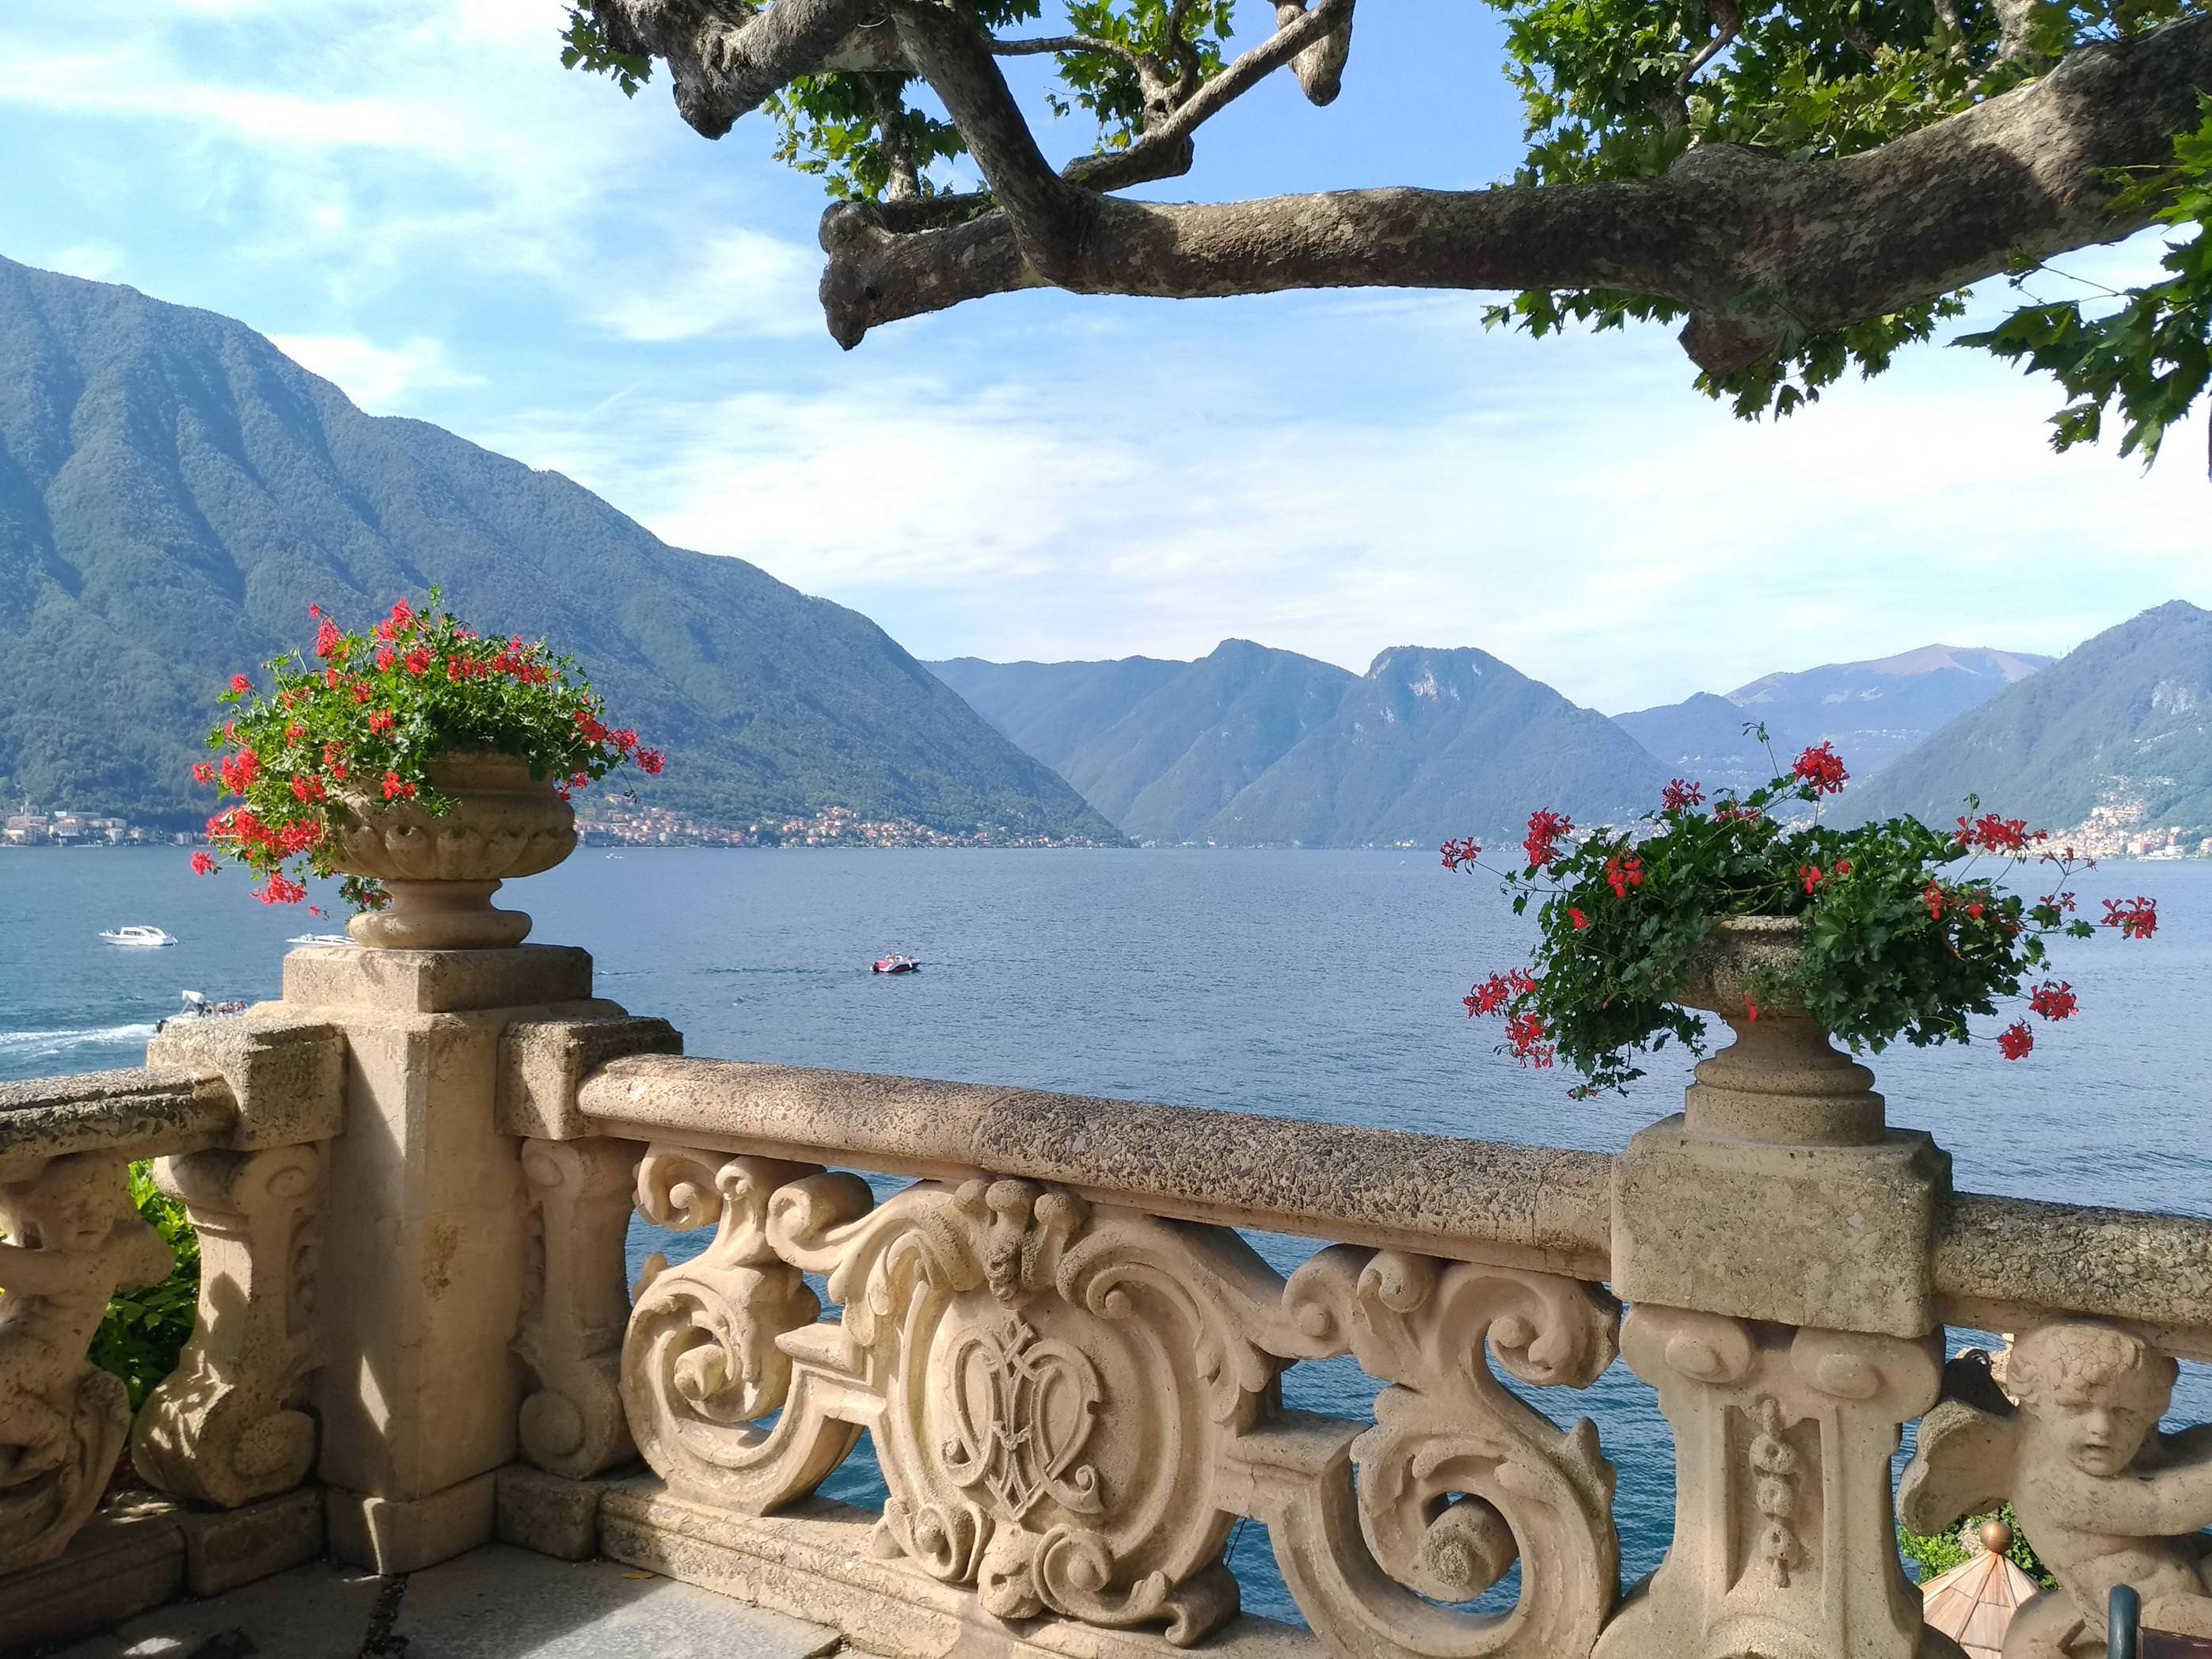 Visited Villa Balbianello today, where they filmed some Naboo scenes in Attack of the Clones